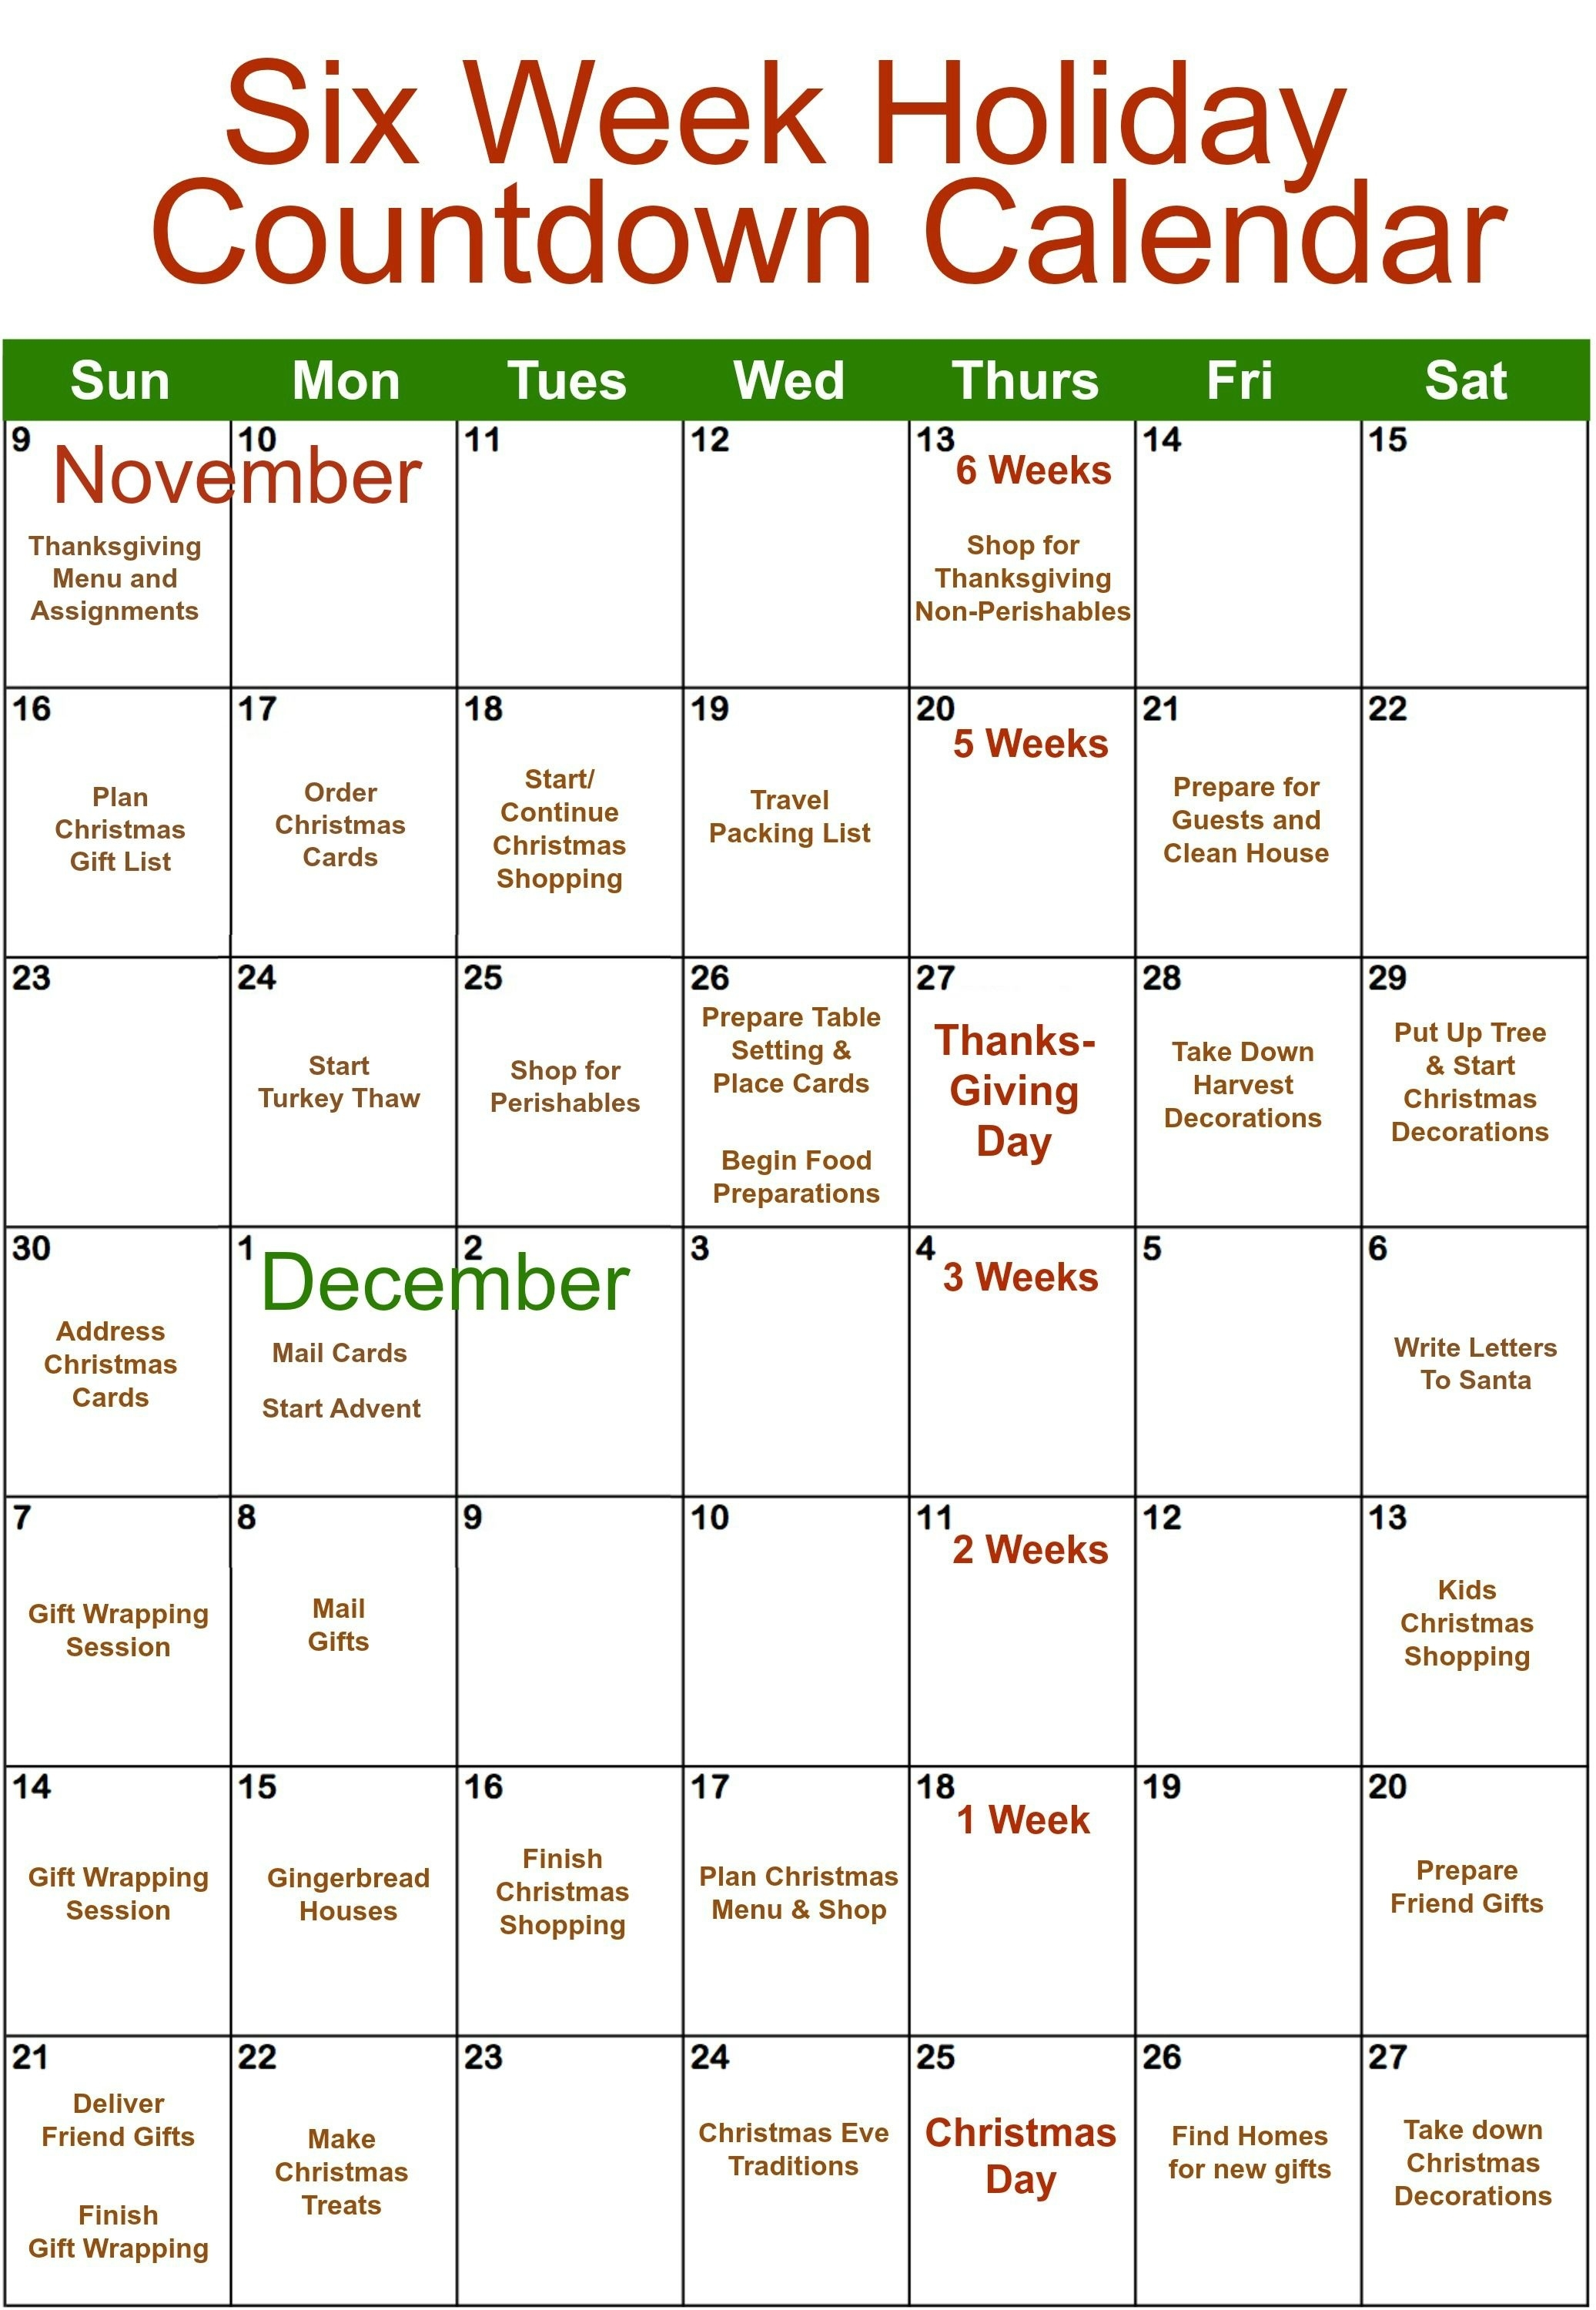 6 Week Holiday Organizing | Falling In Love With Fall | Holiday Countdown Calendar In Weeks